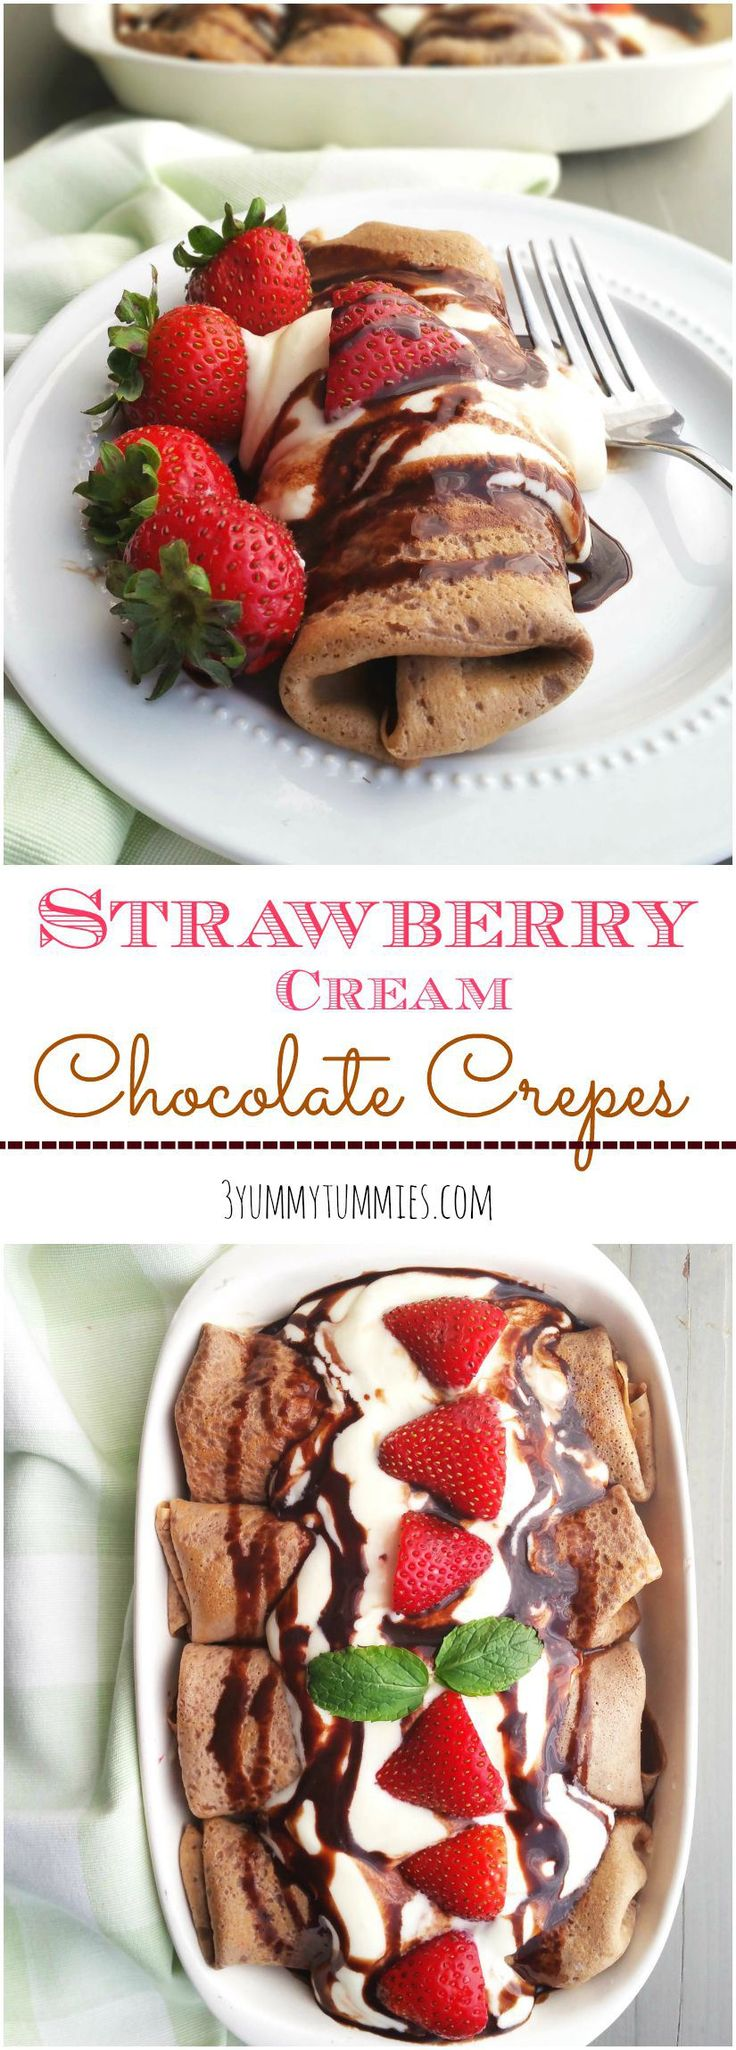 Strawberry Cream Chocolate Crepes